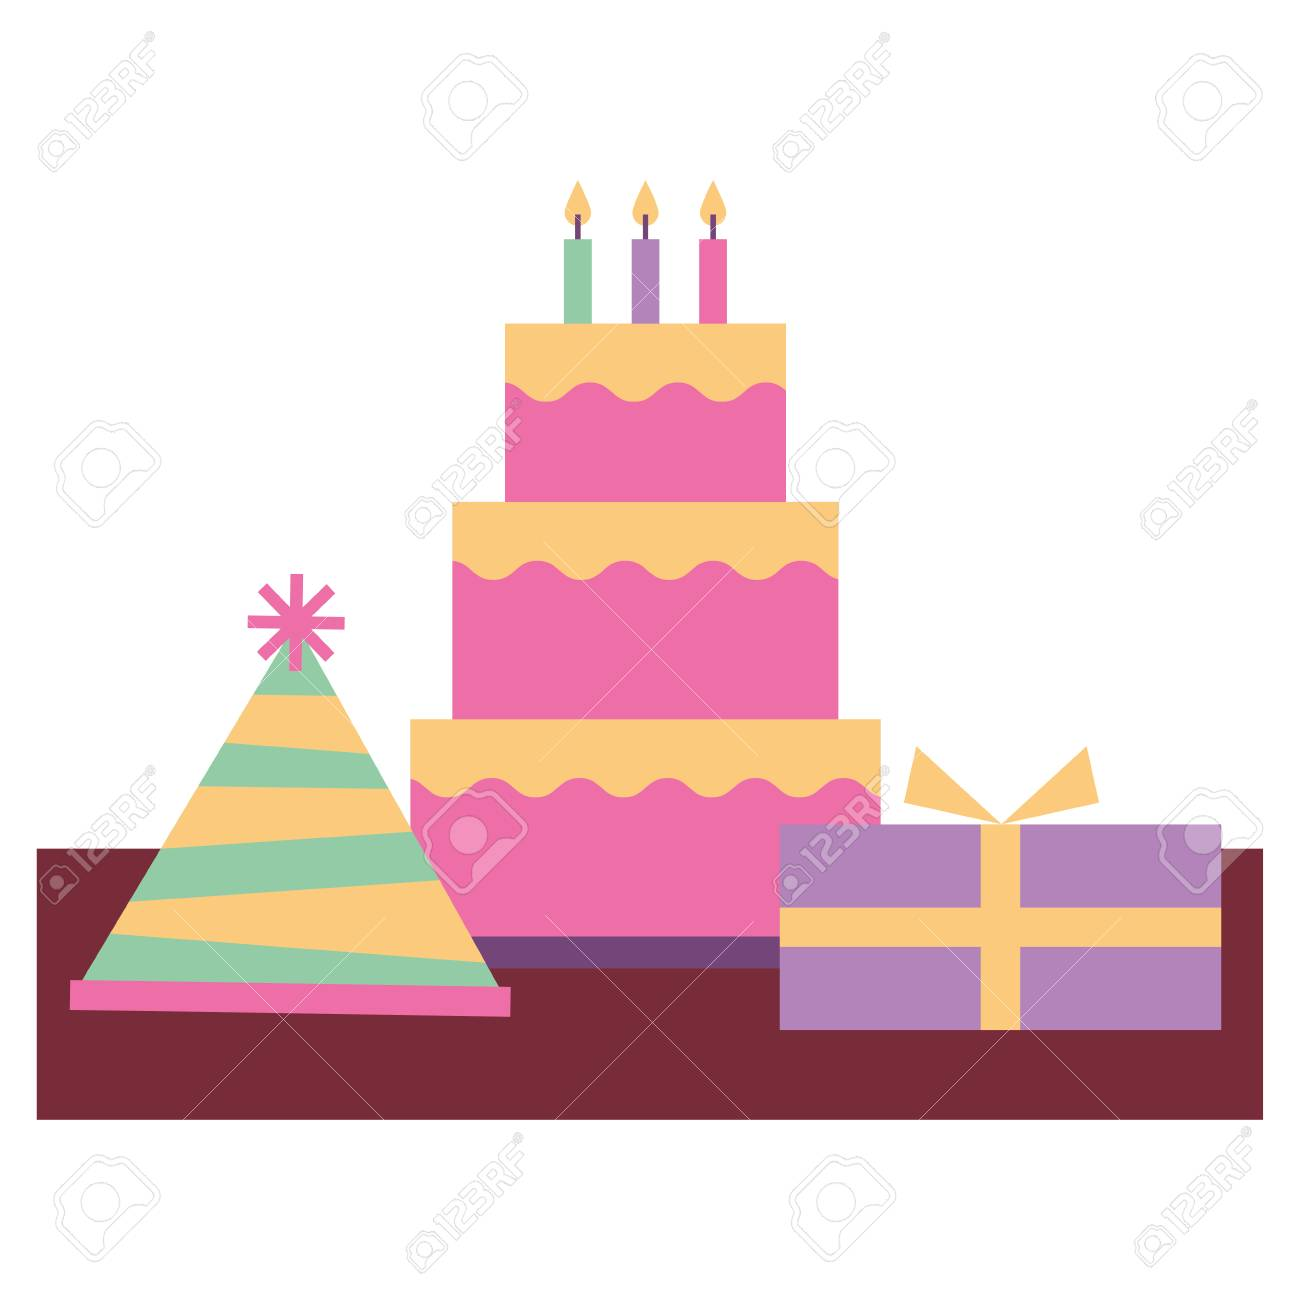 Birthday Cake And Gift Boxes Celebration Vector Illustration Royalty